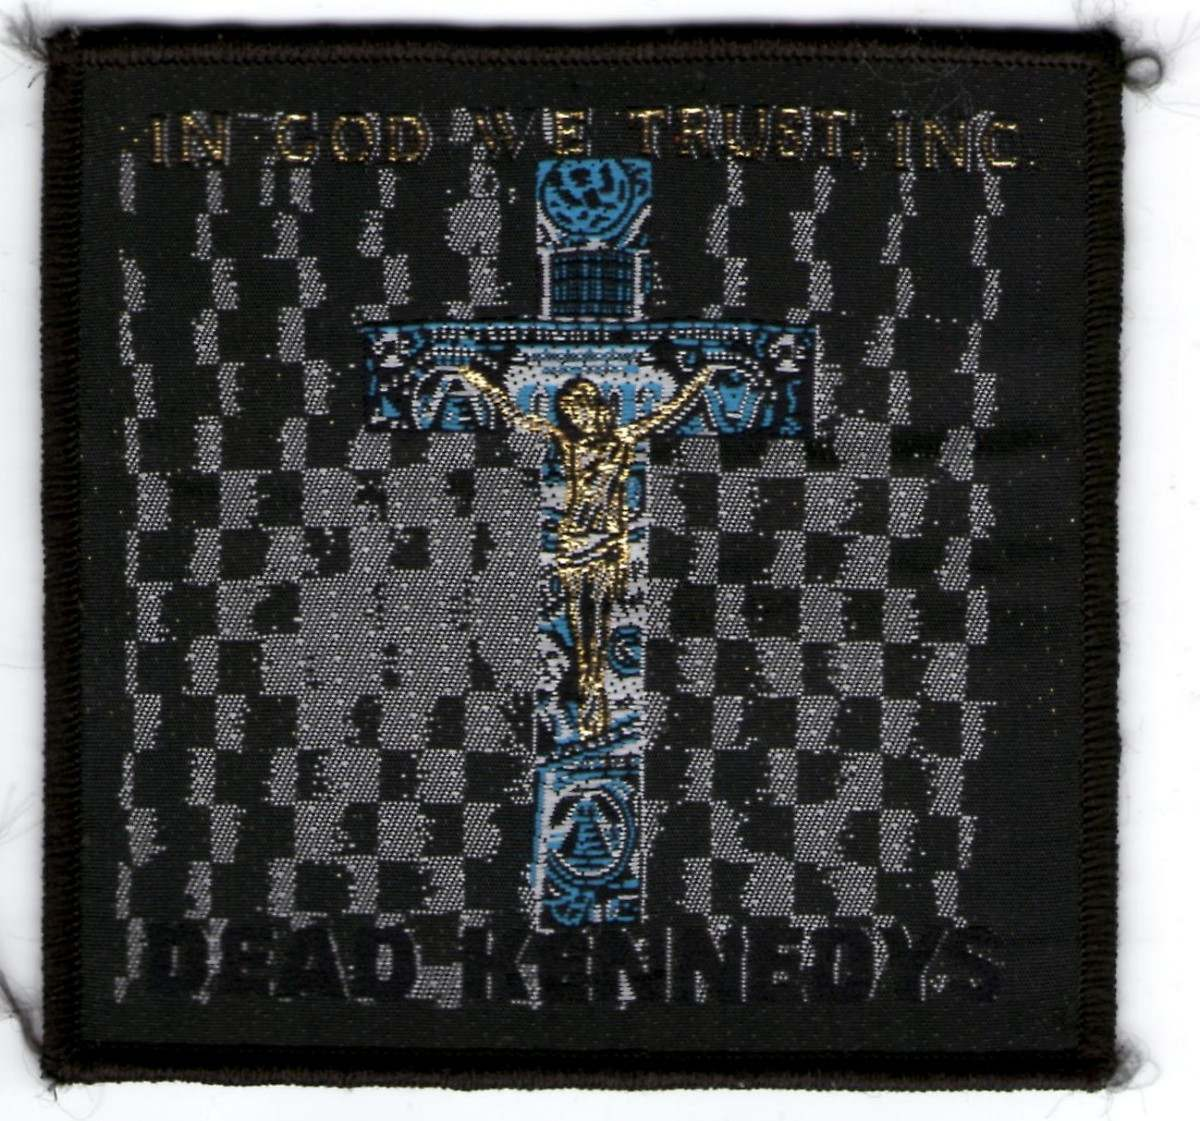 patch tecido - dead kennedys - in god we trust inc importadoIn God We Trust Inc